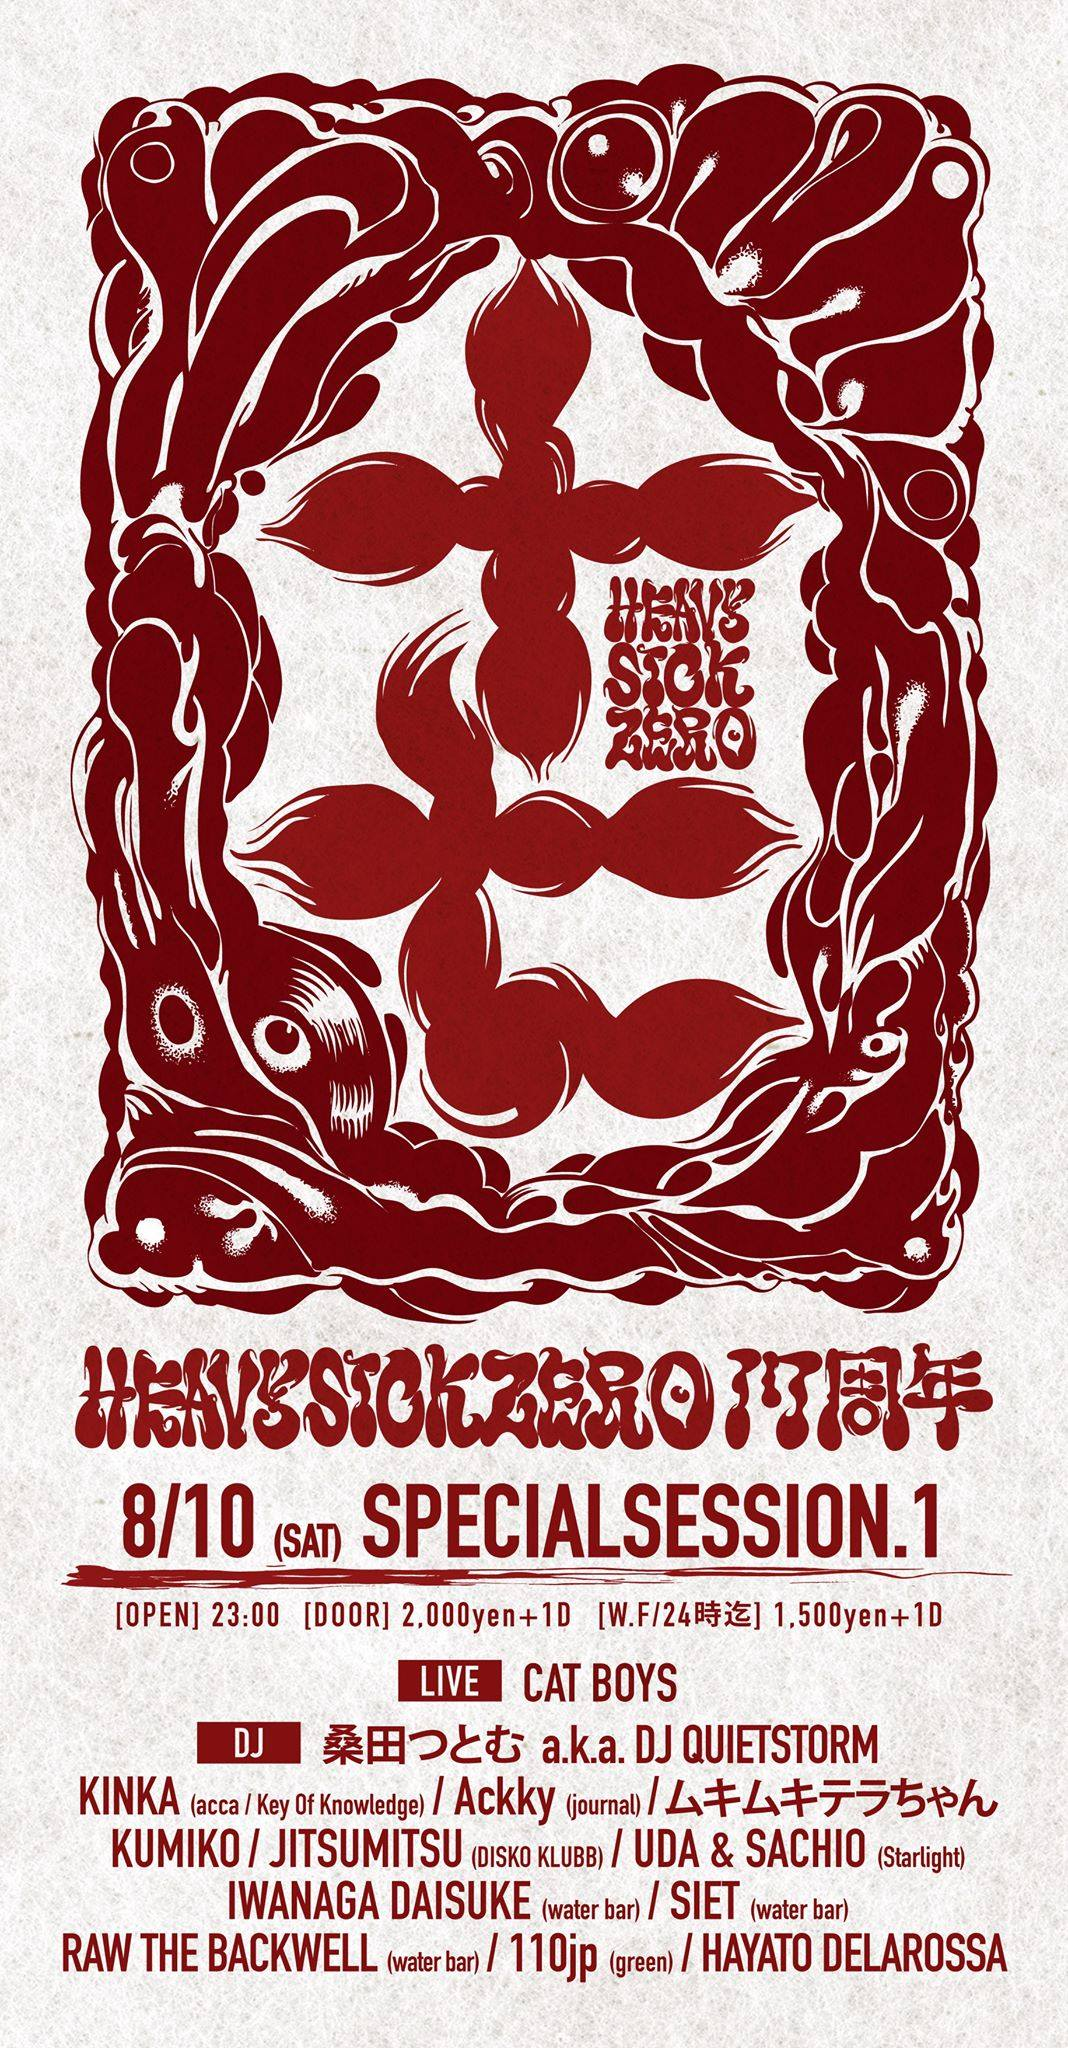 heavysick ZERO 17th Anniversary=Special Session.1=2019年08月10日(土) at heavysick ZERO